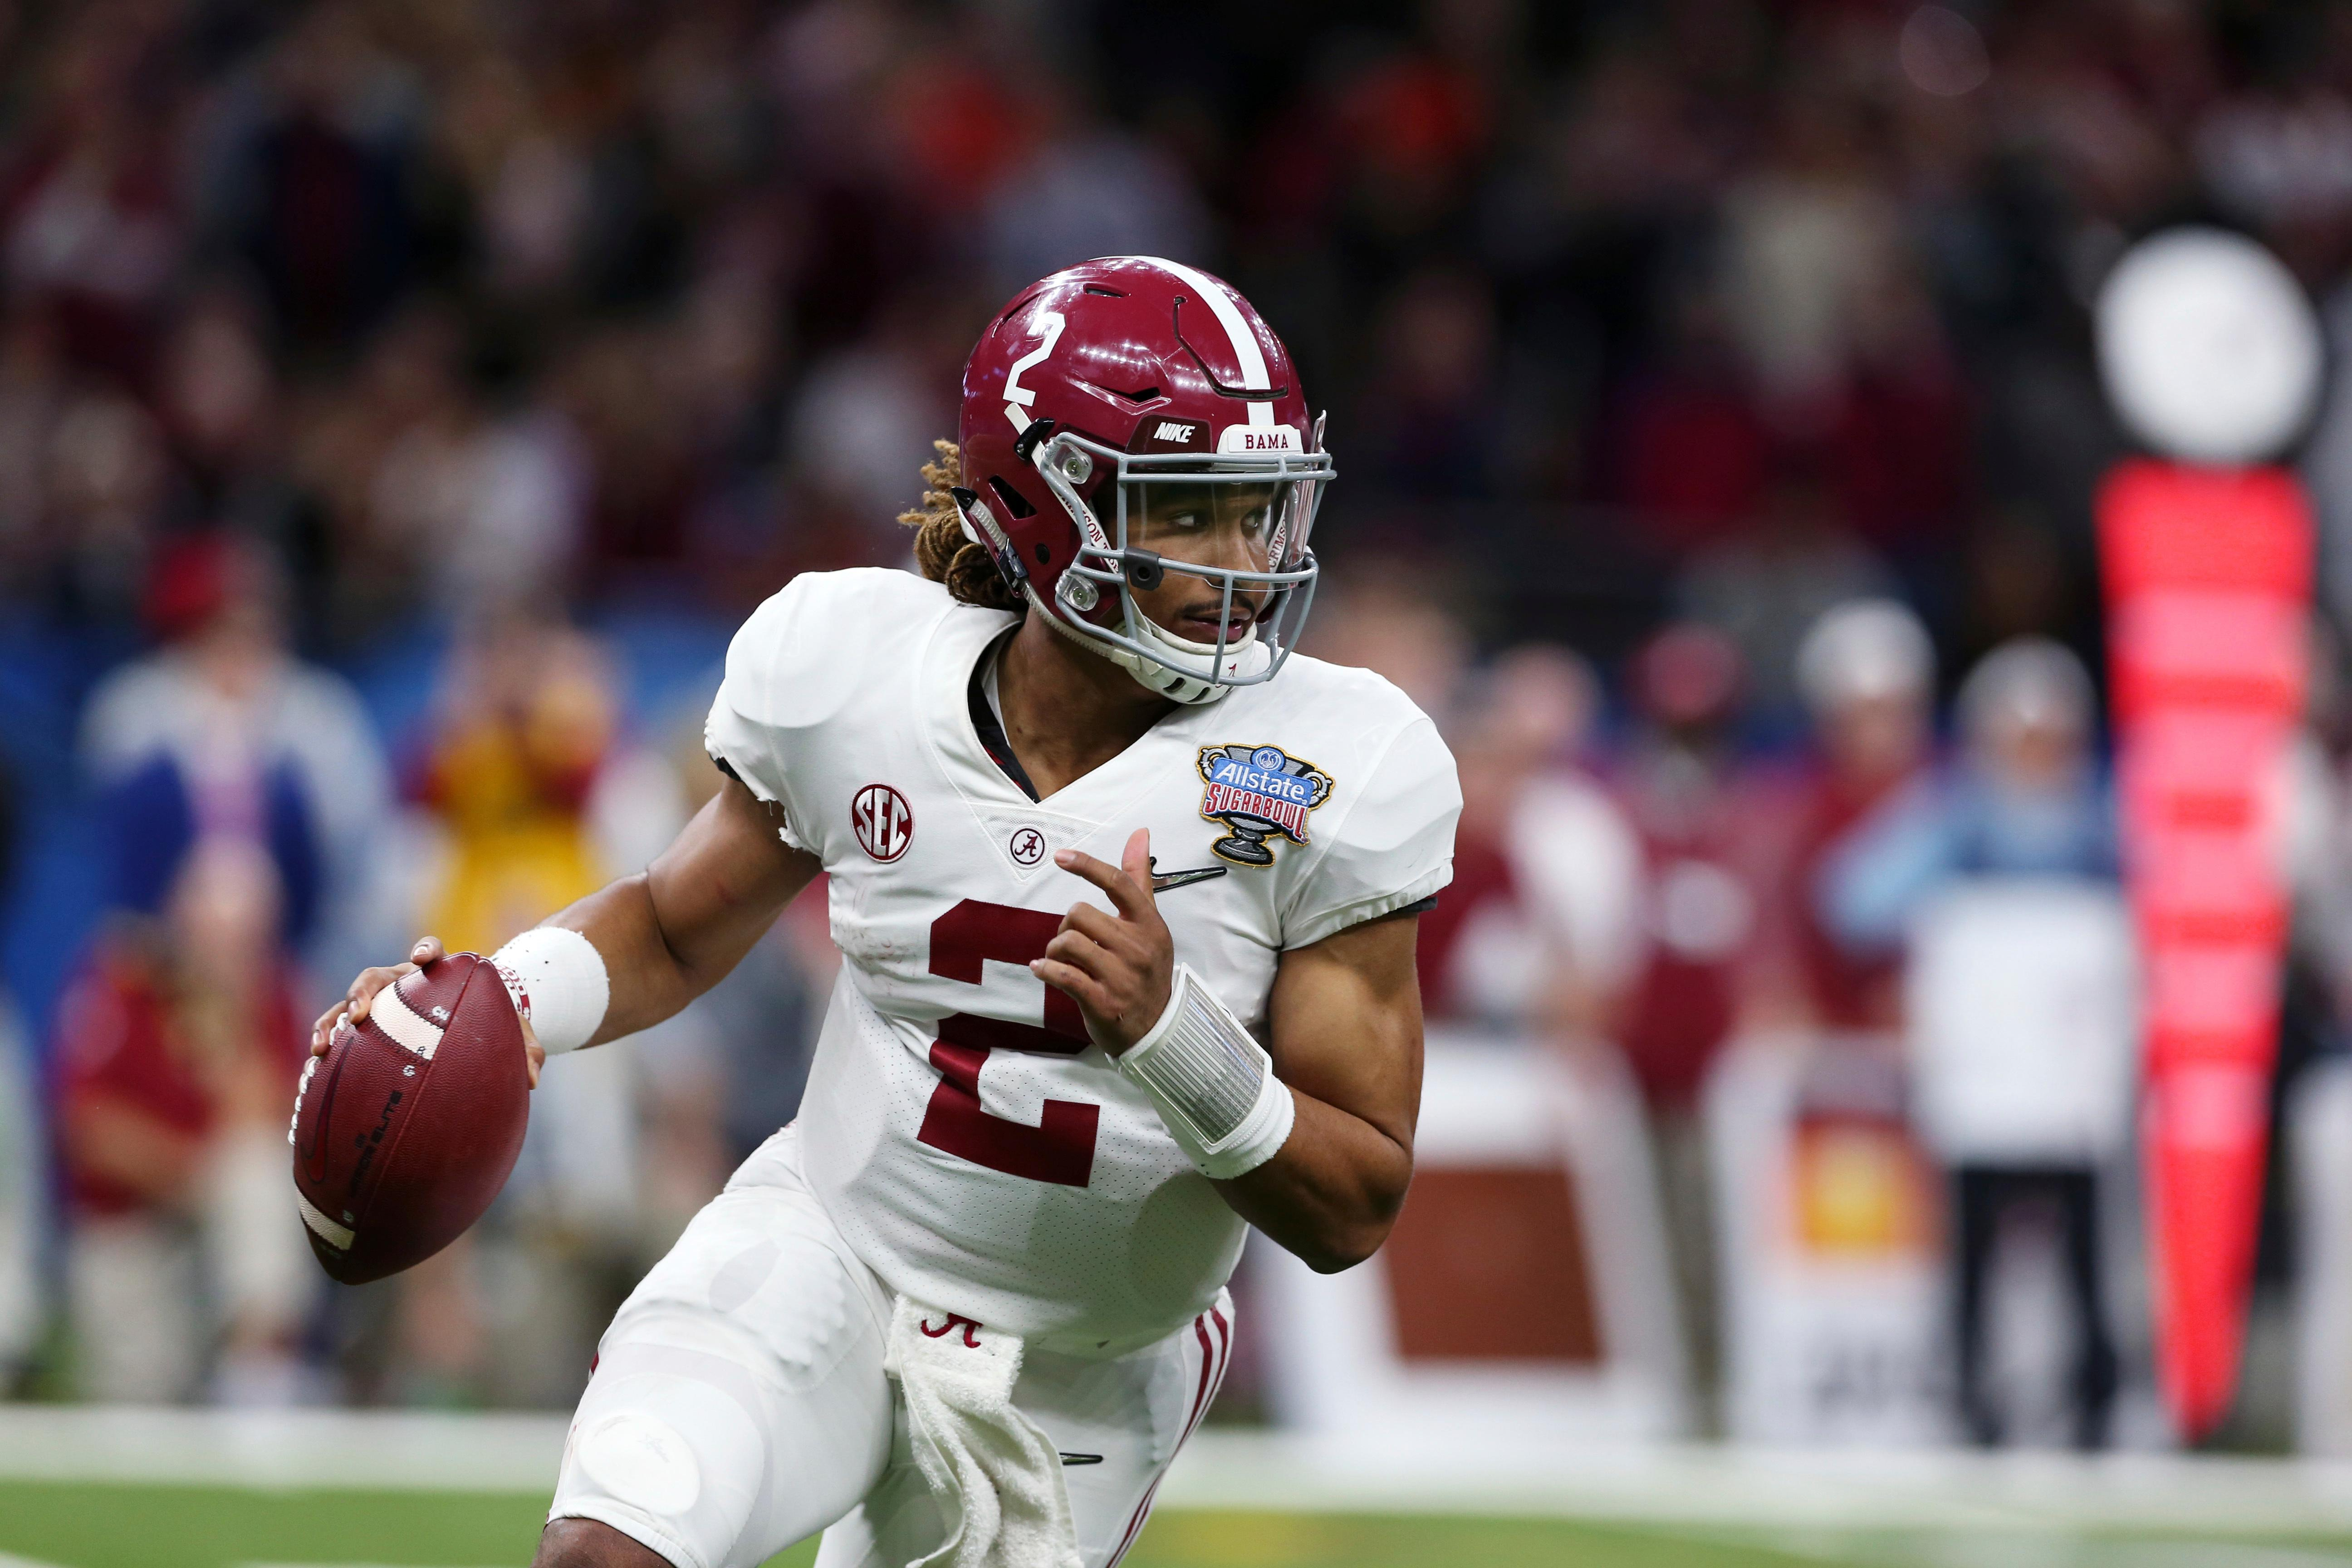 Alabama quarterback Jalen Hurts (2) scrambles in the second half of the Sugar Bowl semi-final playoff game against Clemson for the NCAA college football national championship, in New Orleans, Monday, Jan. 1, 2018. (AP Photo/Rusty Costanza)